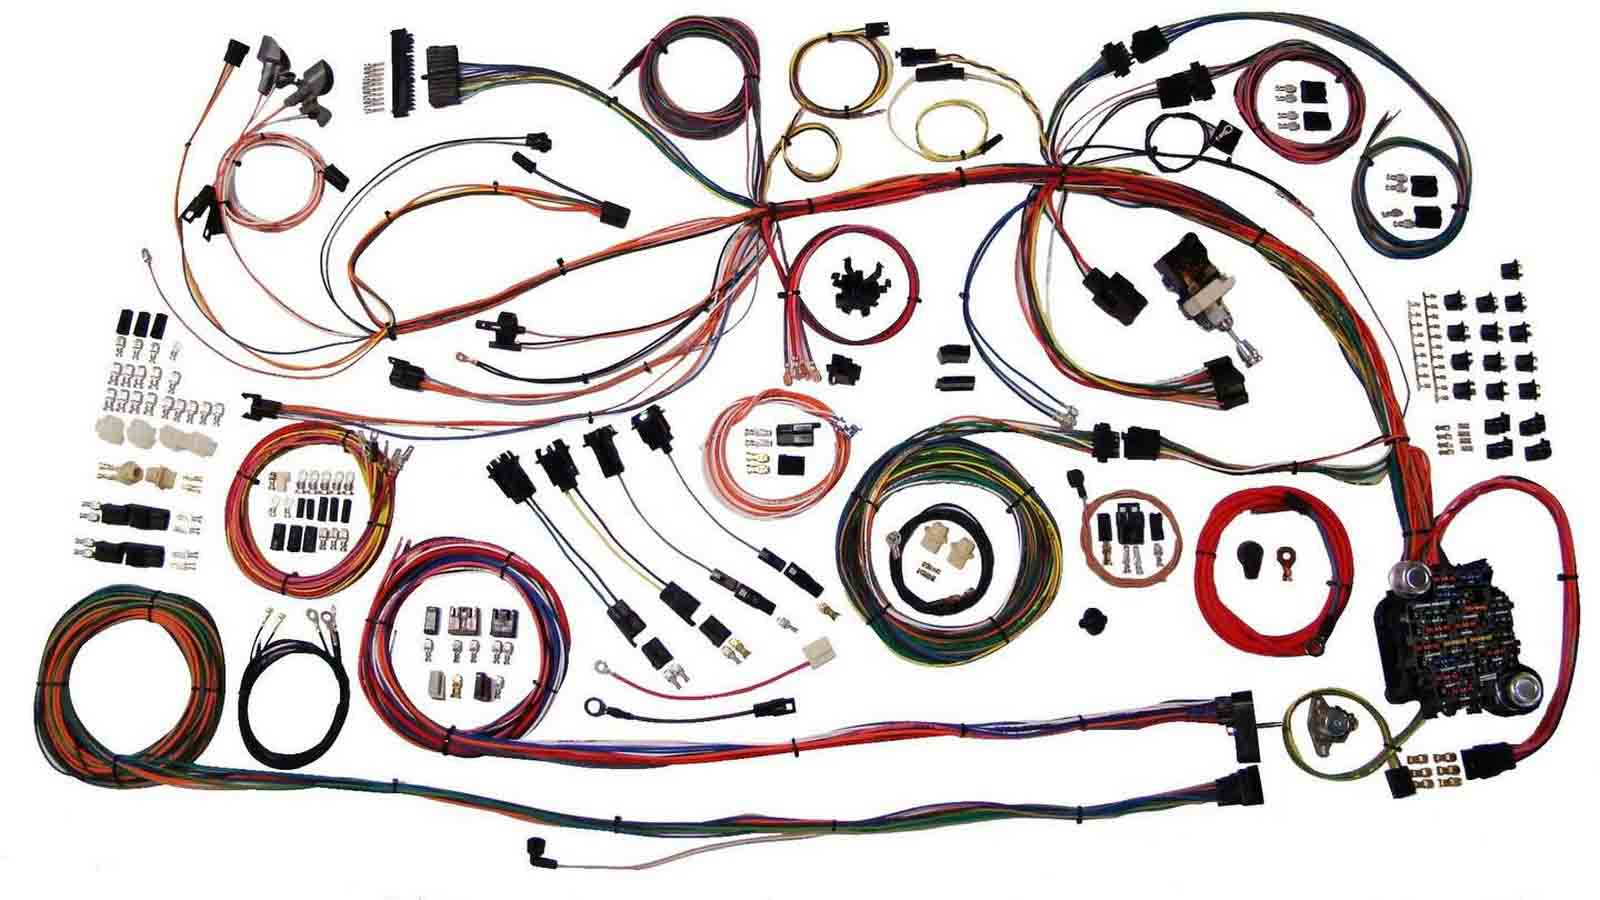 68 69 chevelle wiring harness 1965 Chevelle Wiring